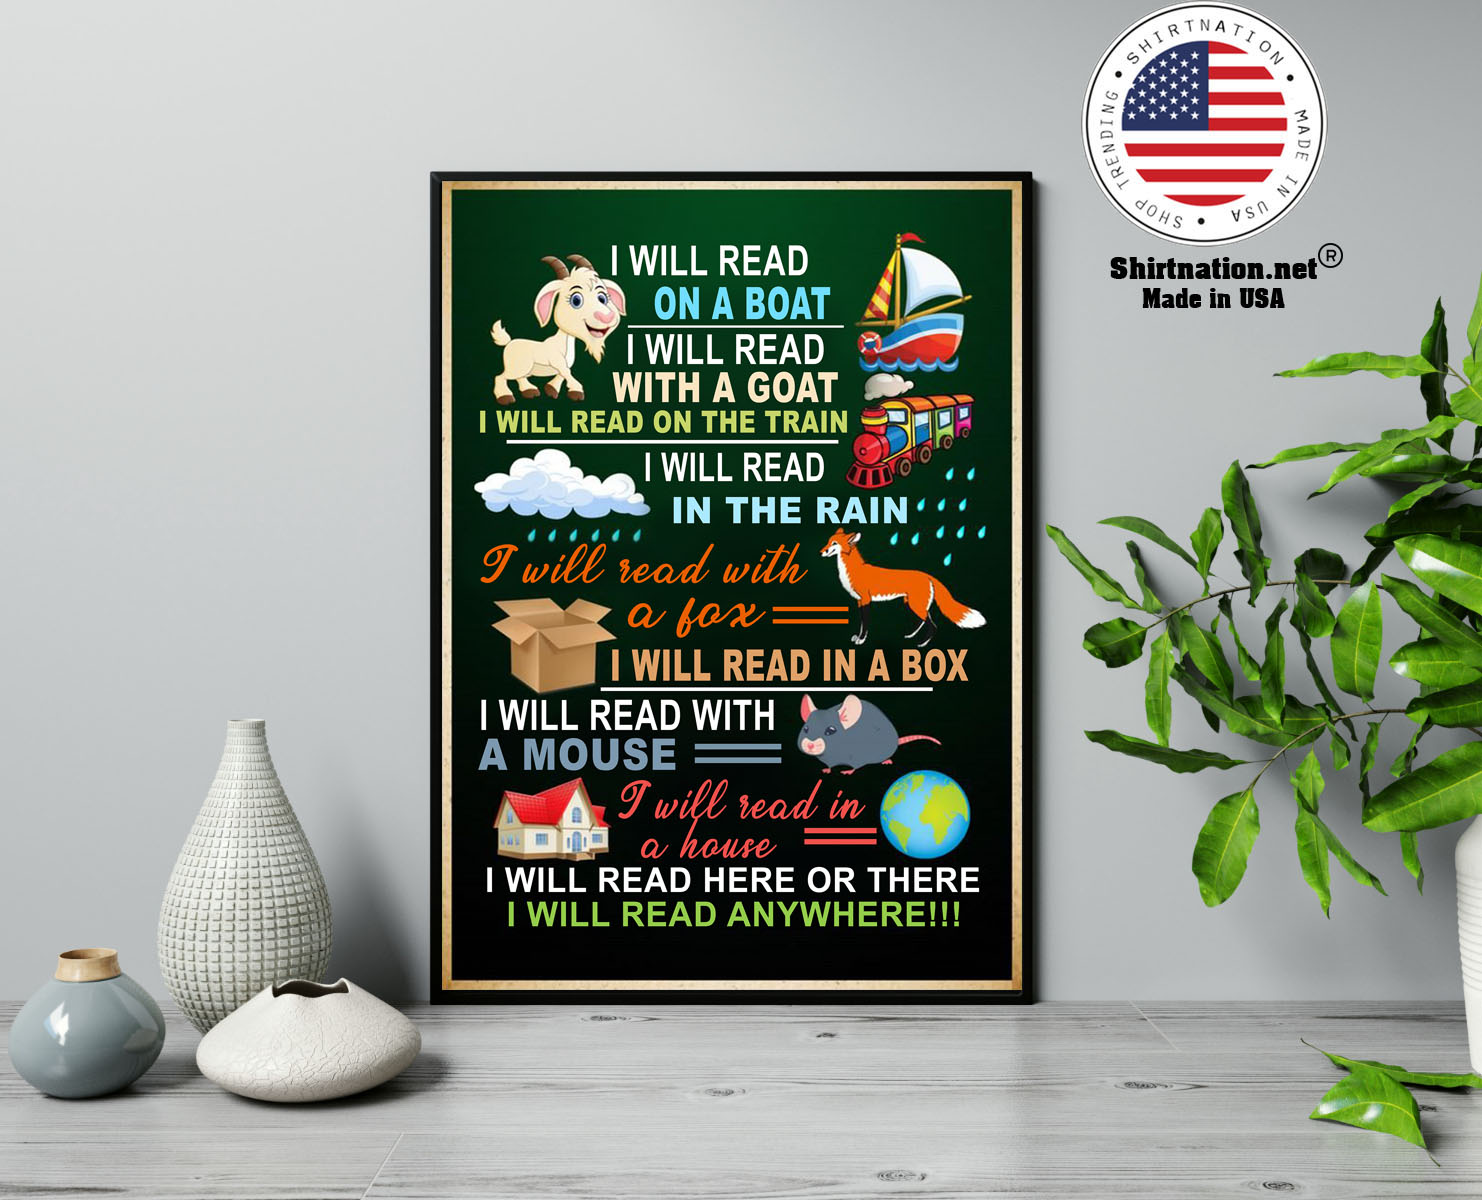 I will read on the boat I will read with the goat in the rain with the fox poster 13